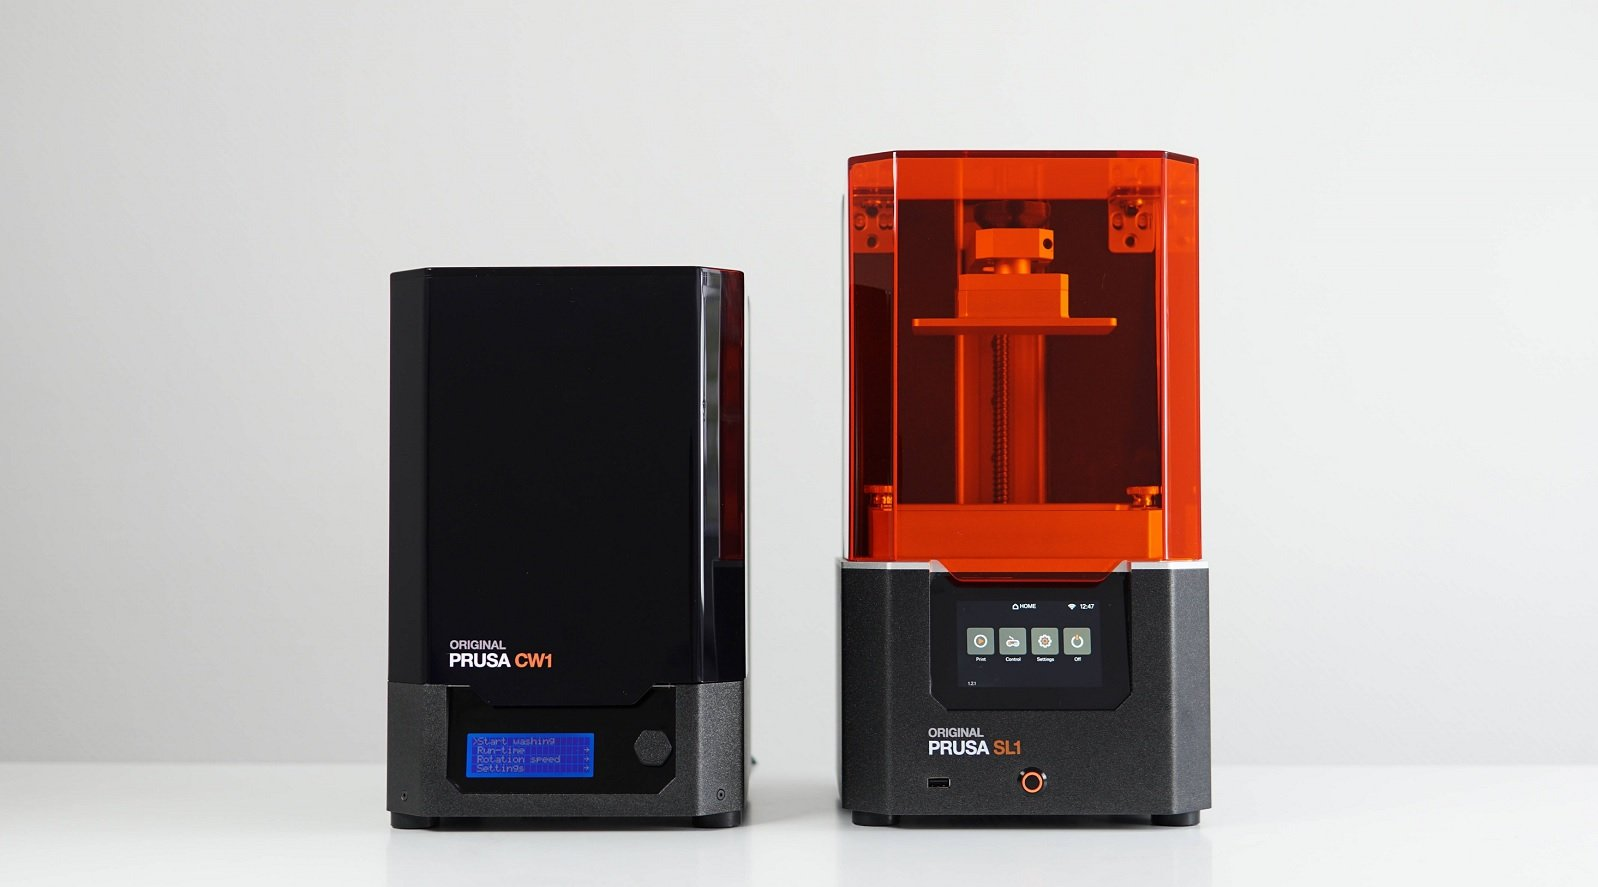 Original Prusa SL1 Review: The MK3S for Resin? | All3DP